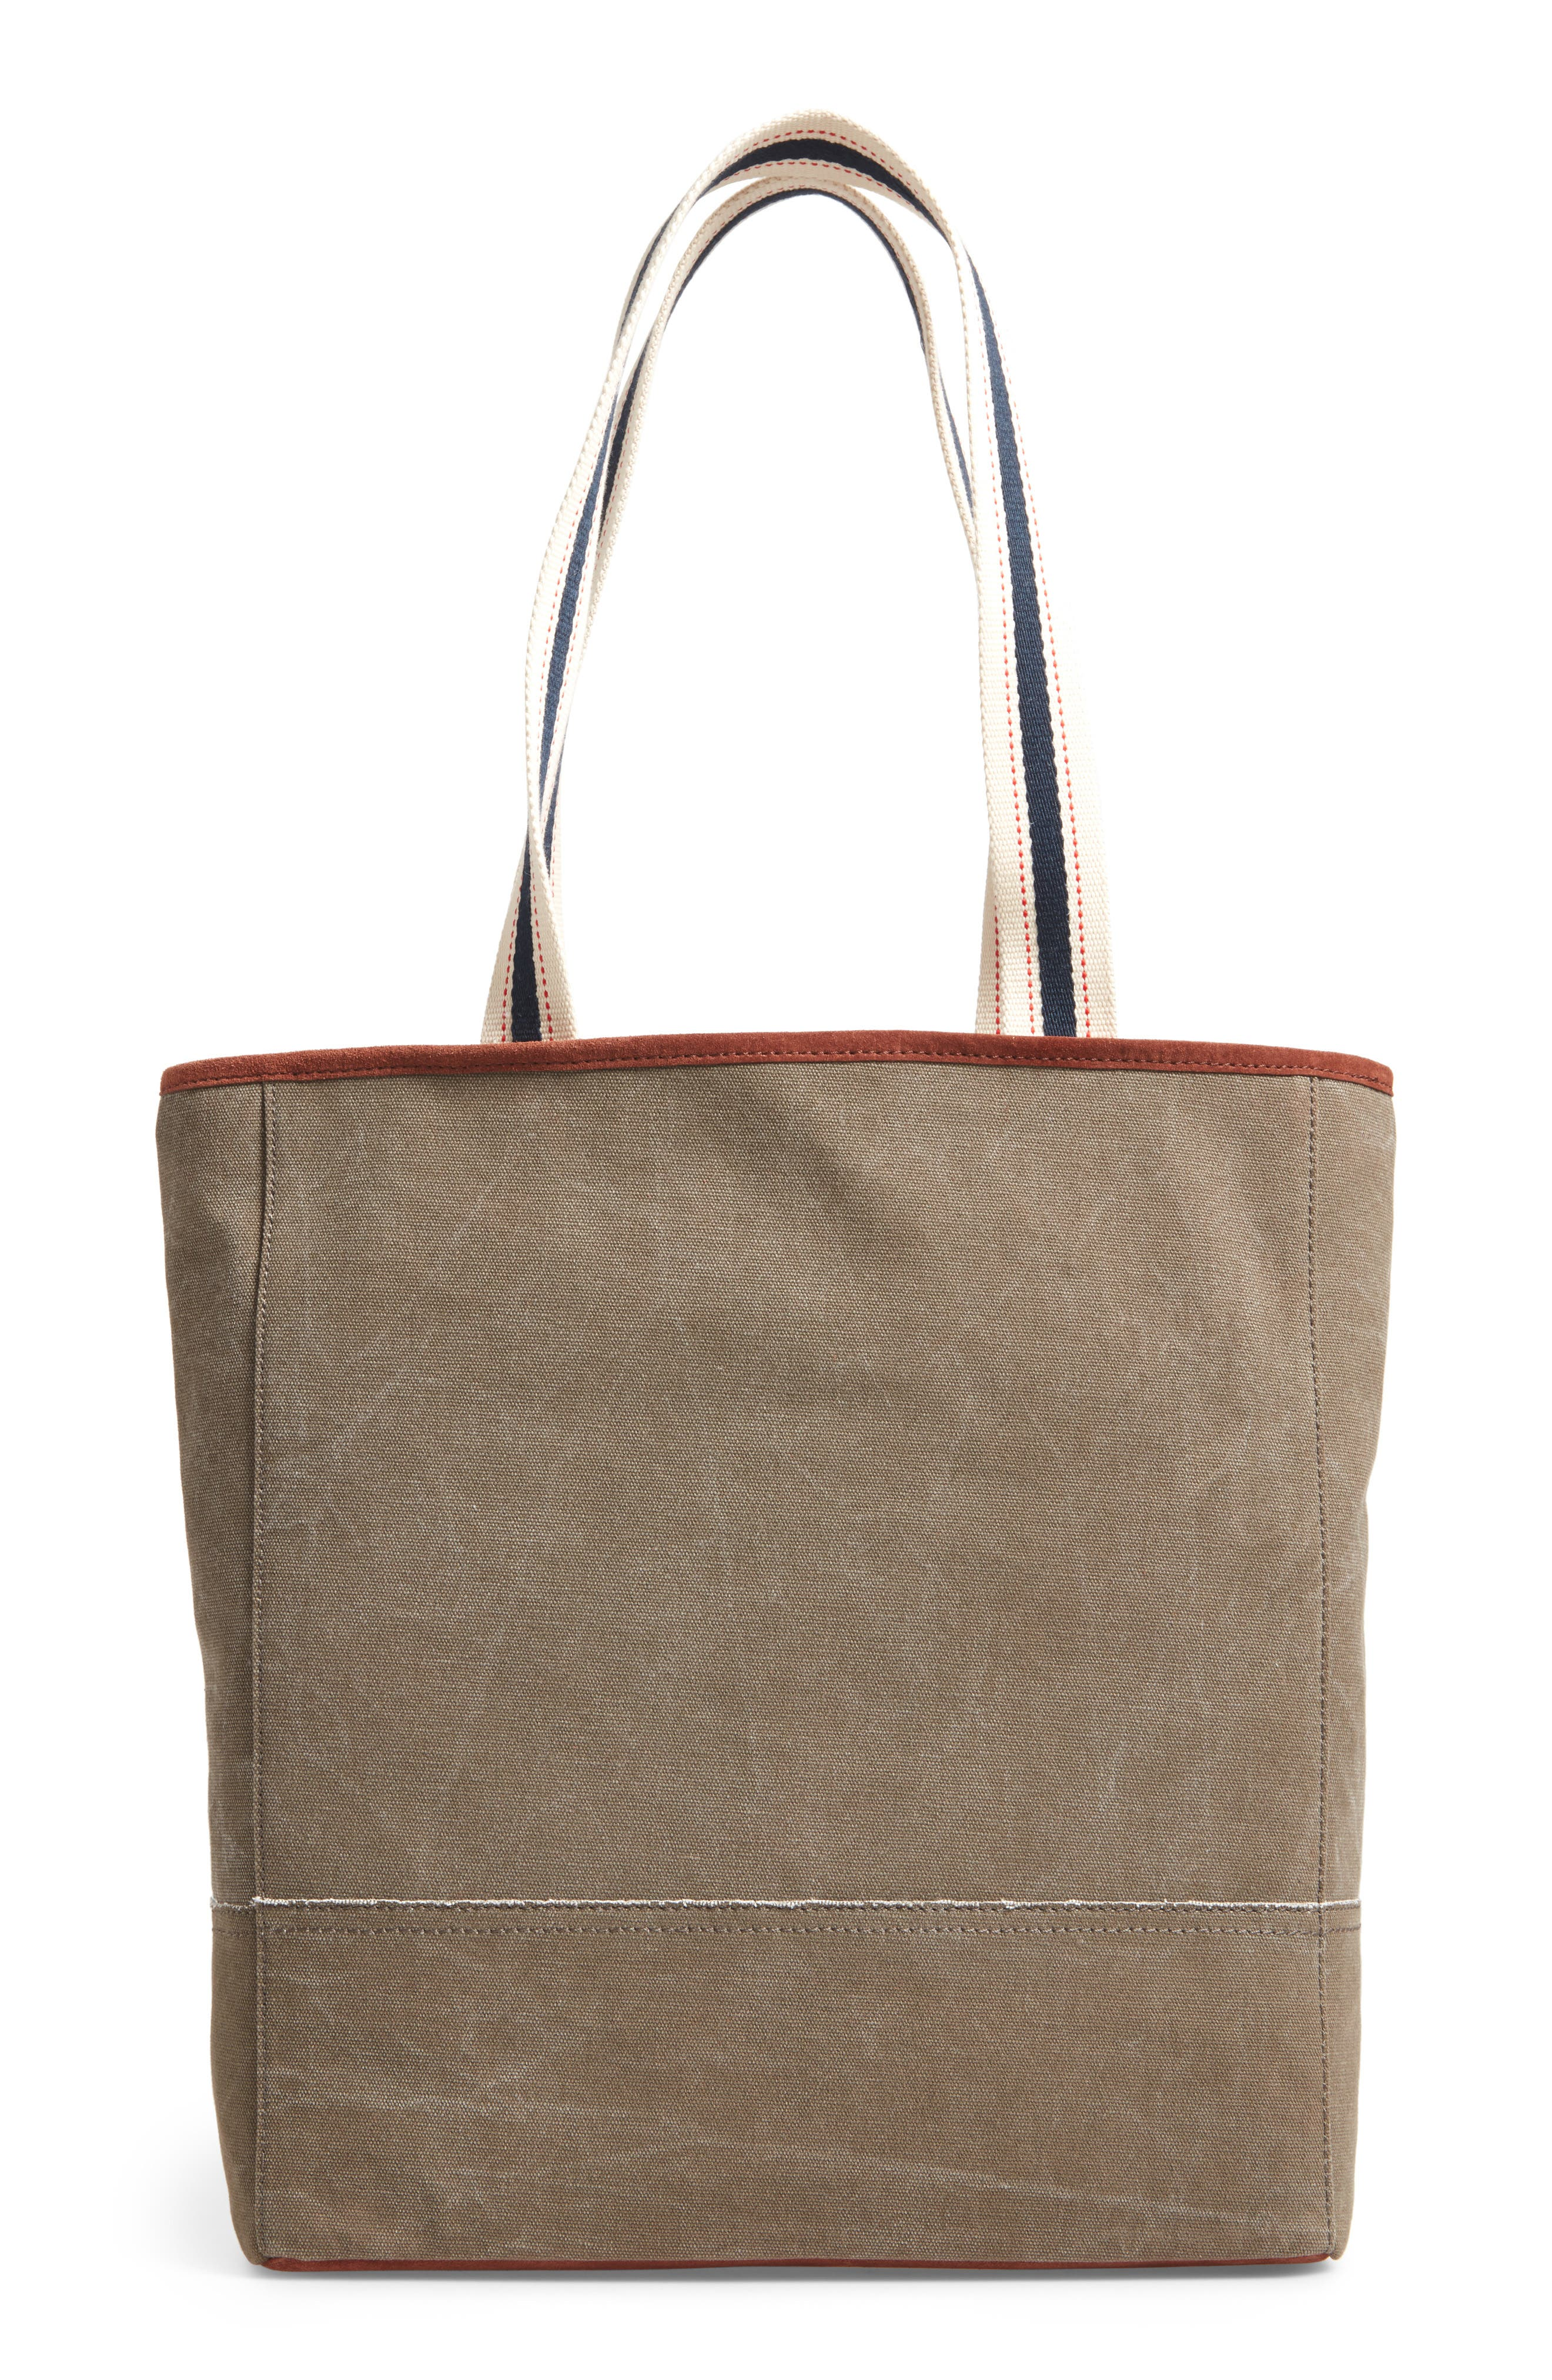 Dakin Canvas & Leather Tote,                             Alternate thumbnail 2, color,                             Lichen/ Dark Umber